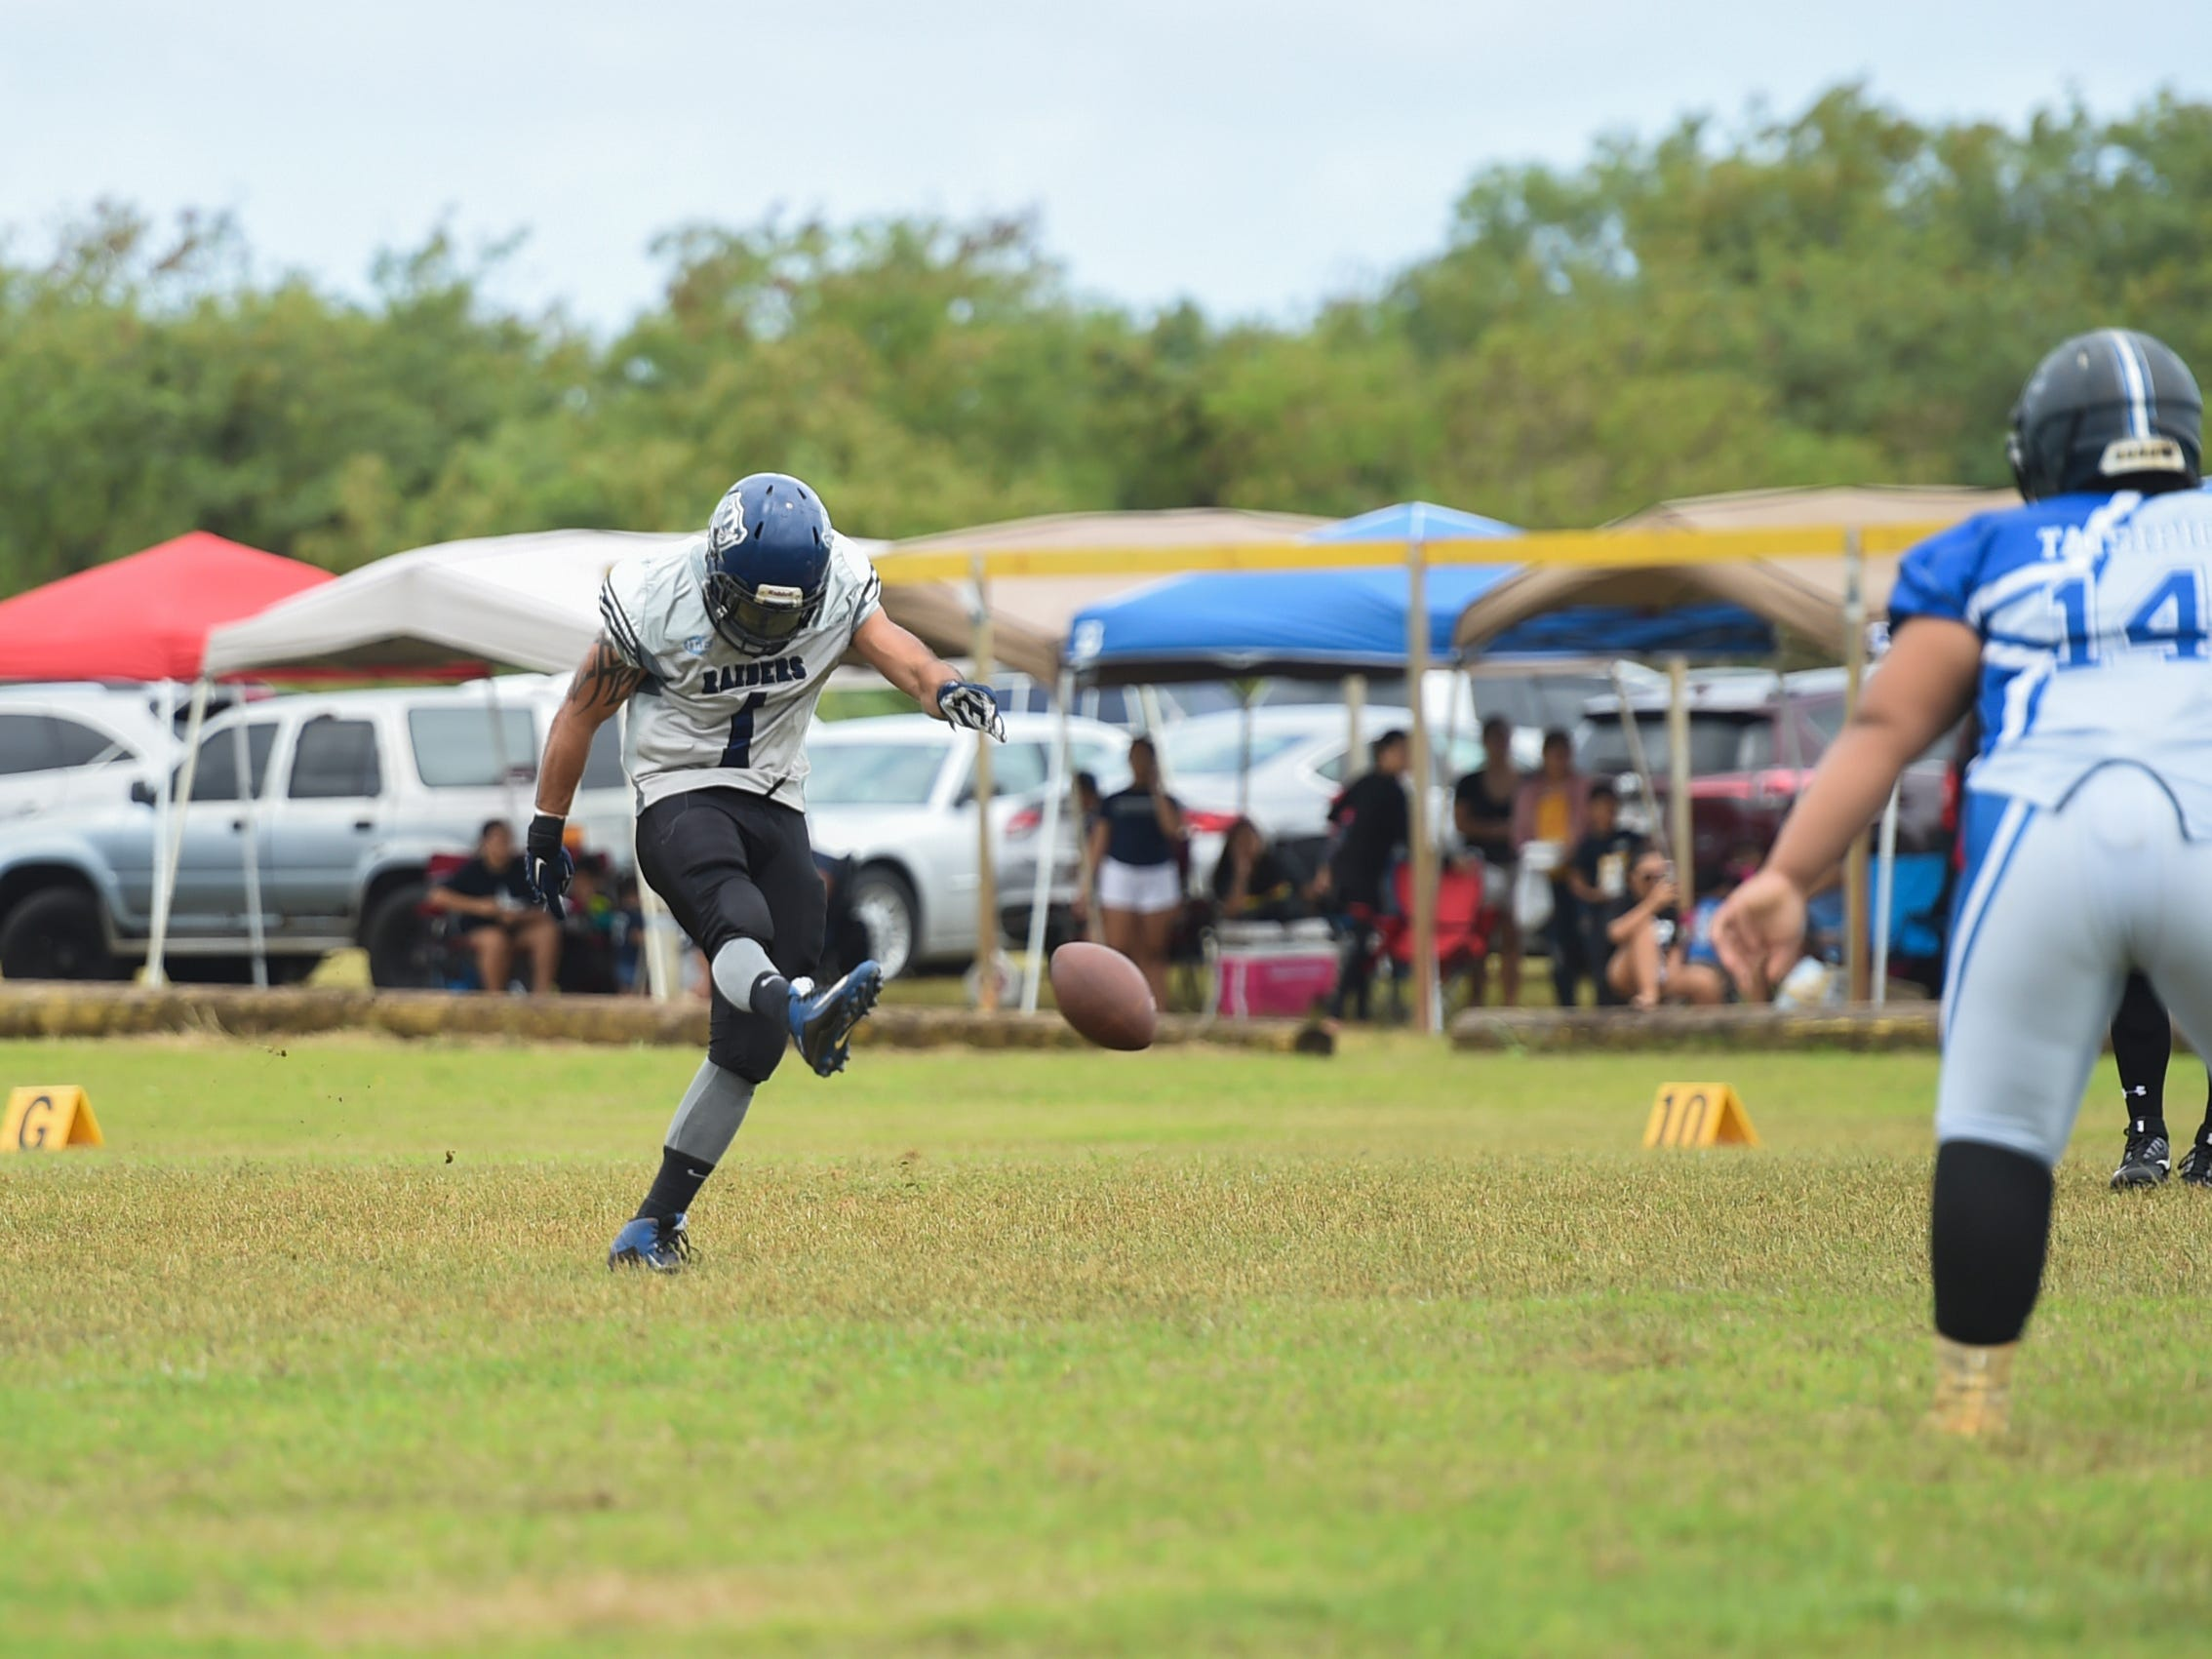 Guam Raiders player Casey Cruz (1) with the kickoff against the Southern Cowboys during their Budweiser Guahan Varsity Football League game at Eagles Field in Mangilao, Feb. 2, 2019.